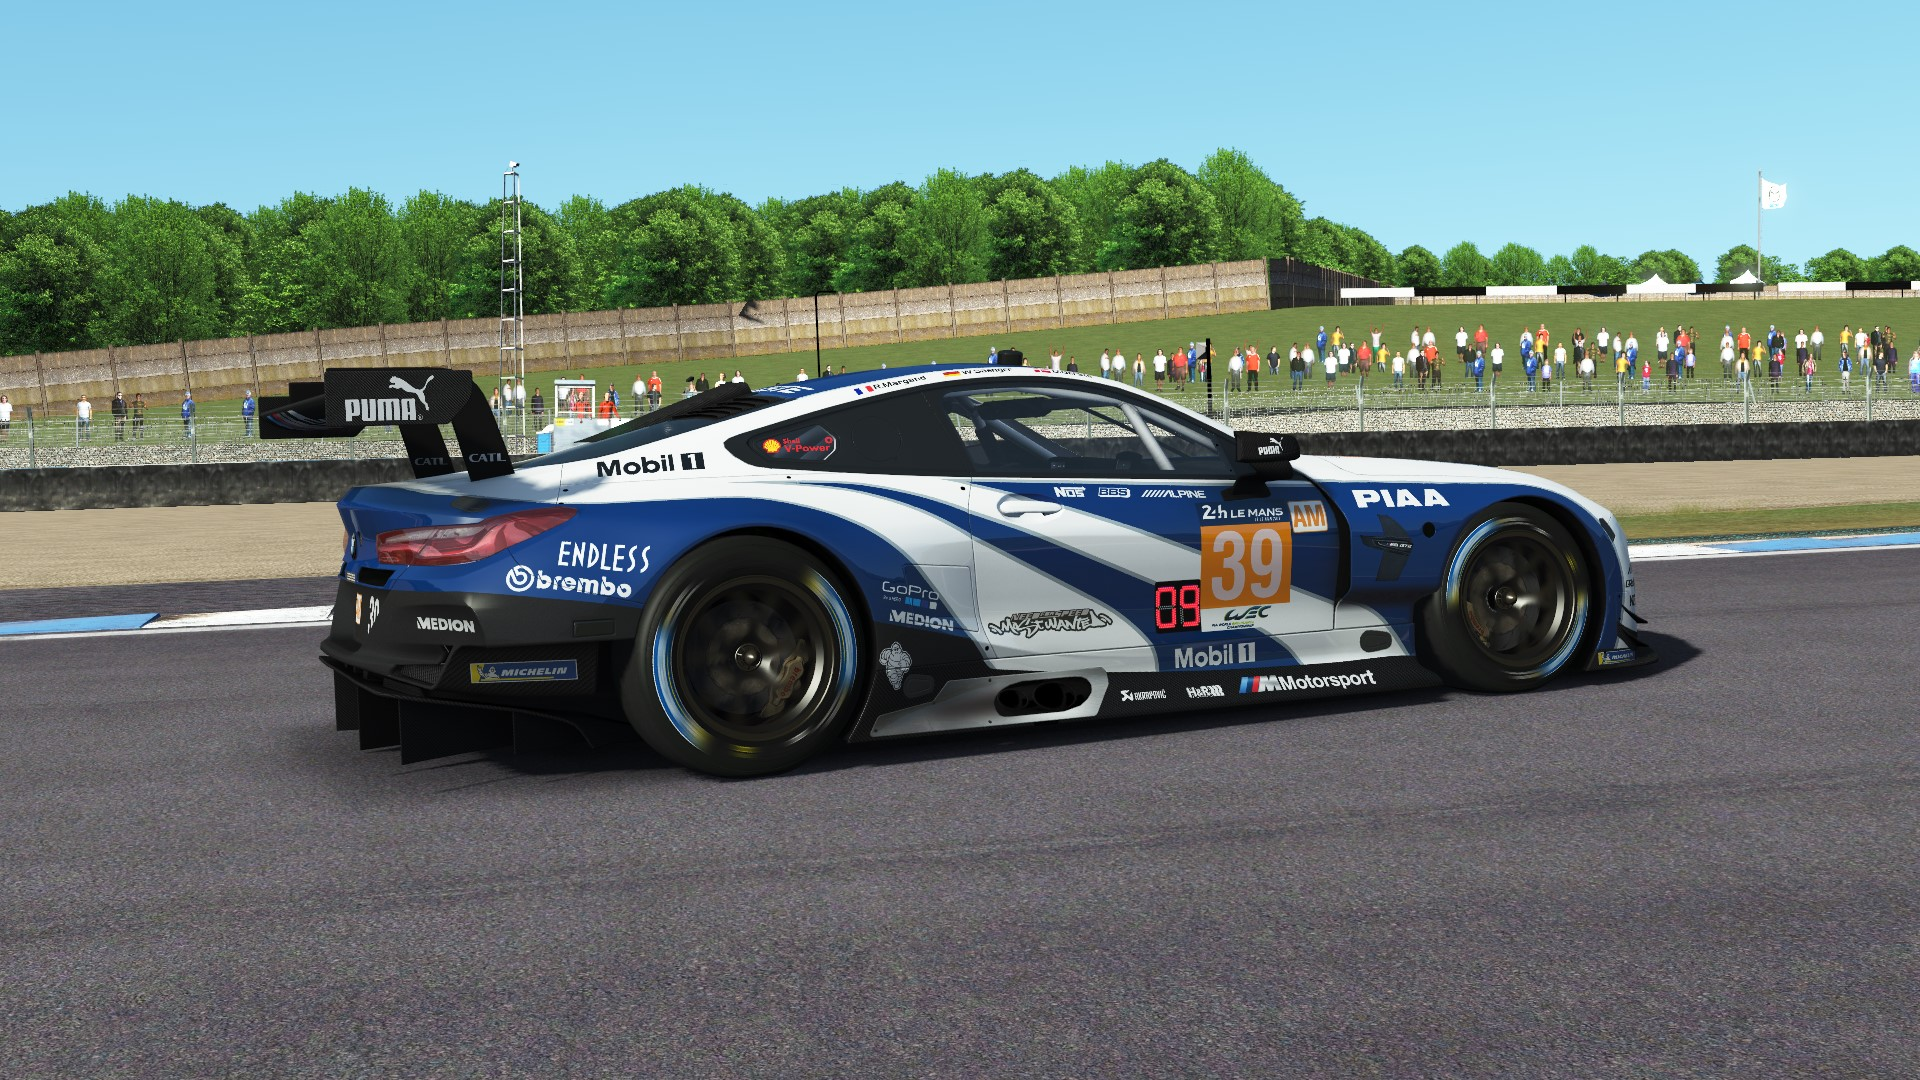 BMW M8 GTE Need For Speed livery | RaceDepartment - Latest Formula 1